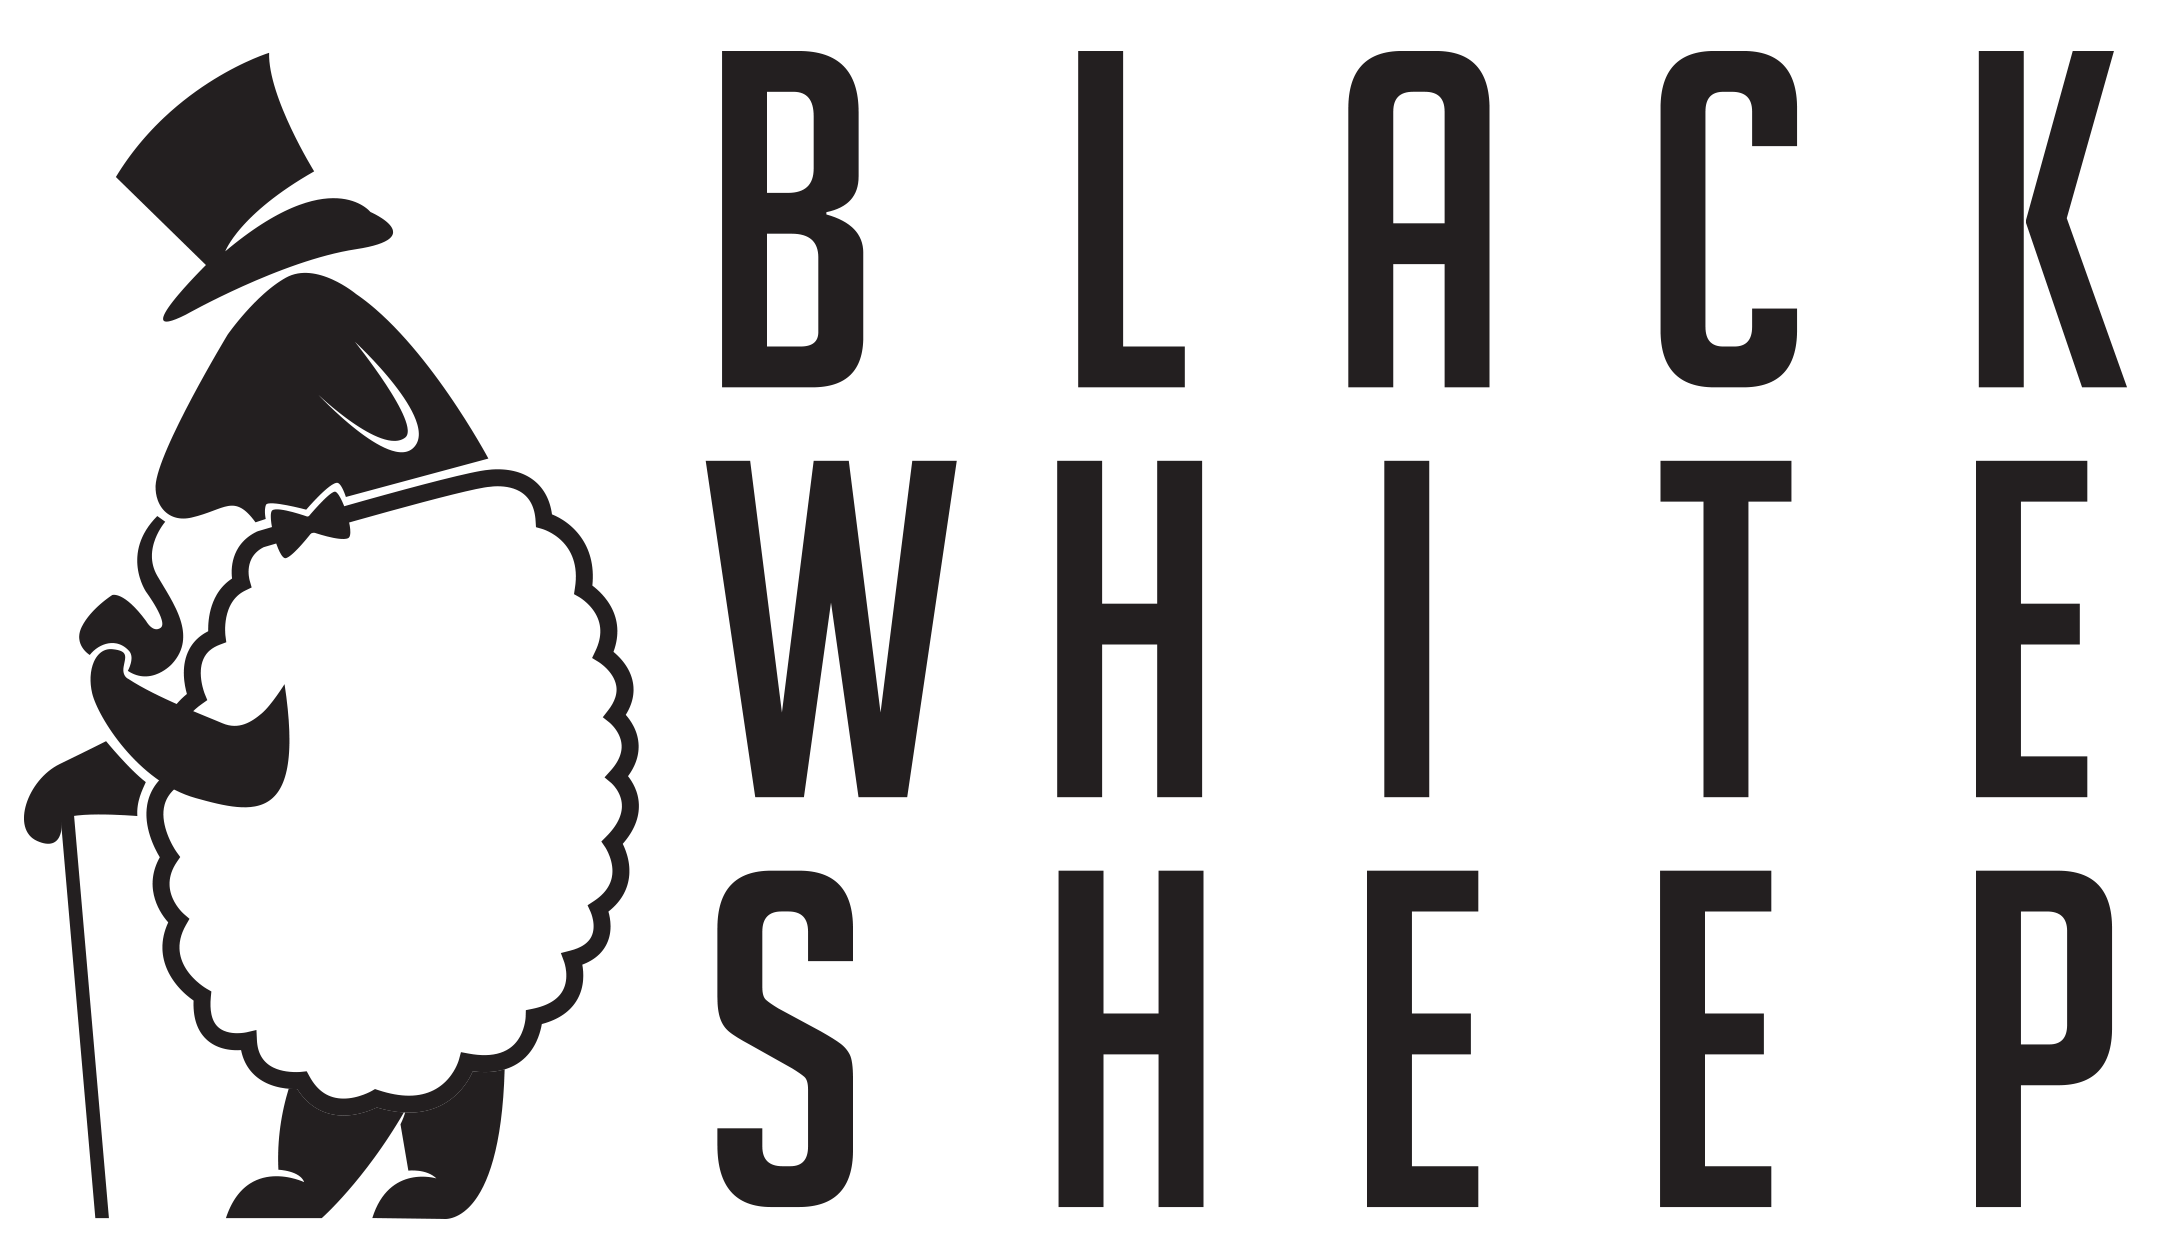 Black White Sheep logo